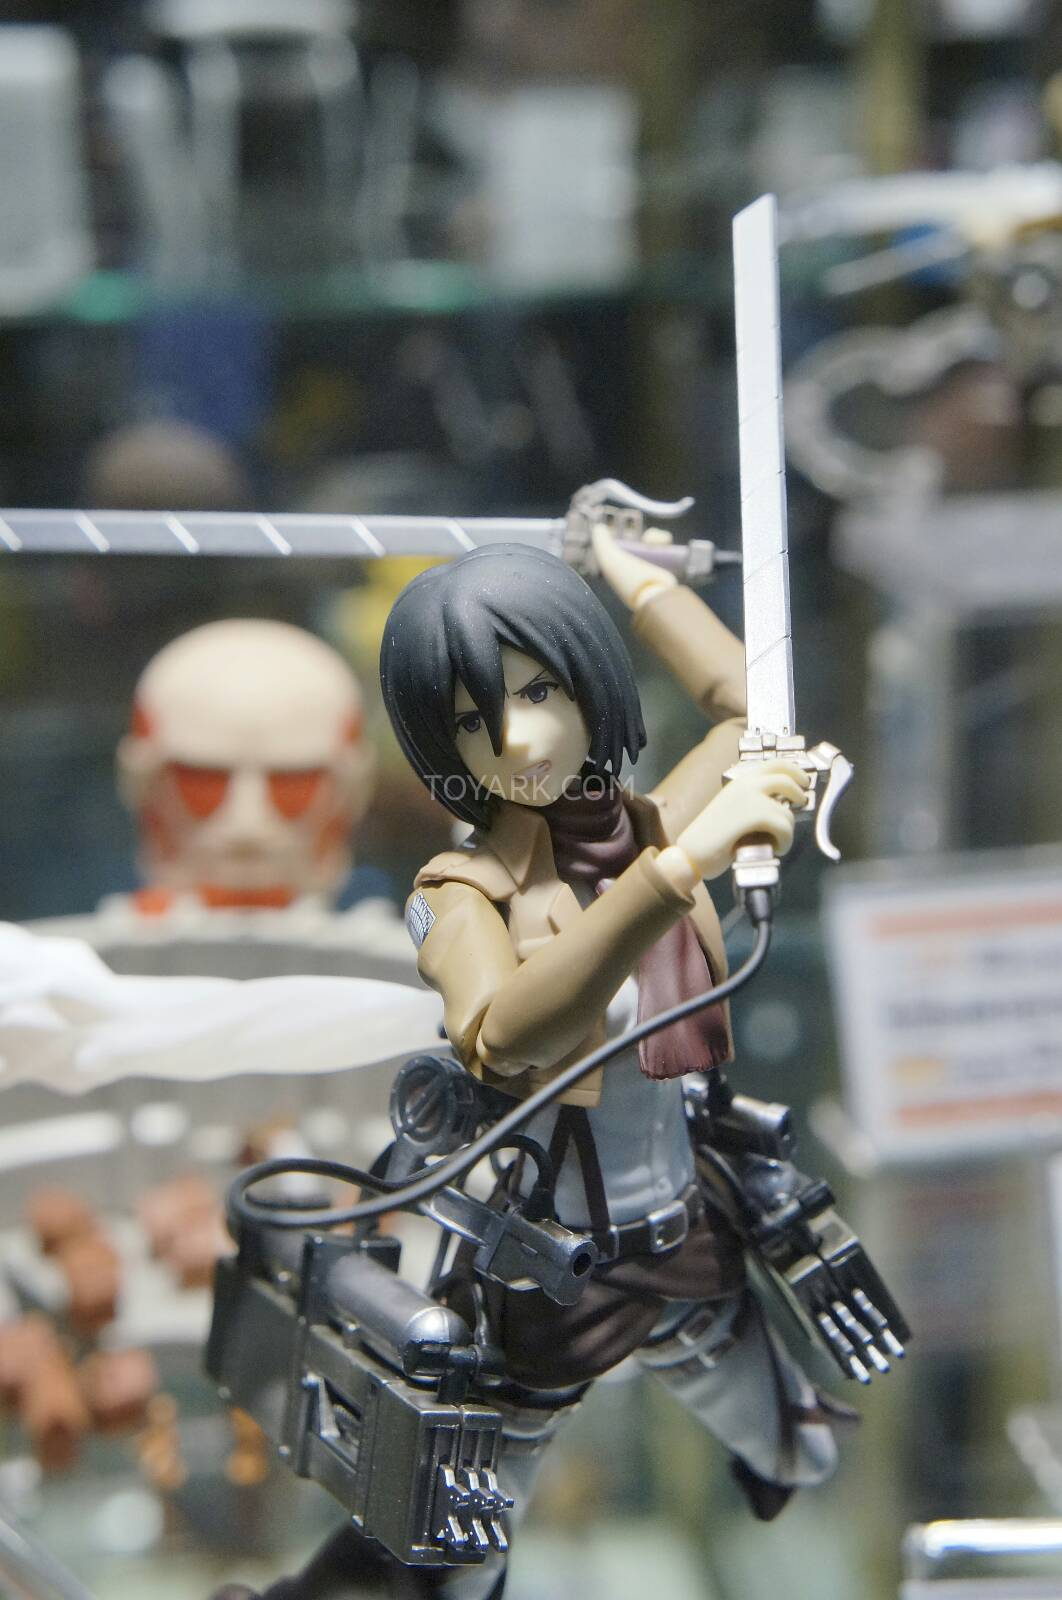 [EVENTO] Toy Fair 2014 - Good Smile Company / Max Factory / Phat Company / FREEing Toy-Fair-2014-Good-Smile-and-Max-Factory-Display-014